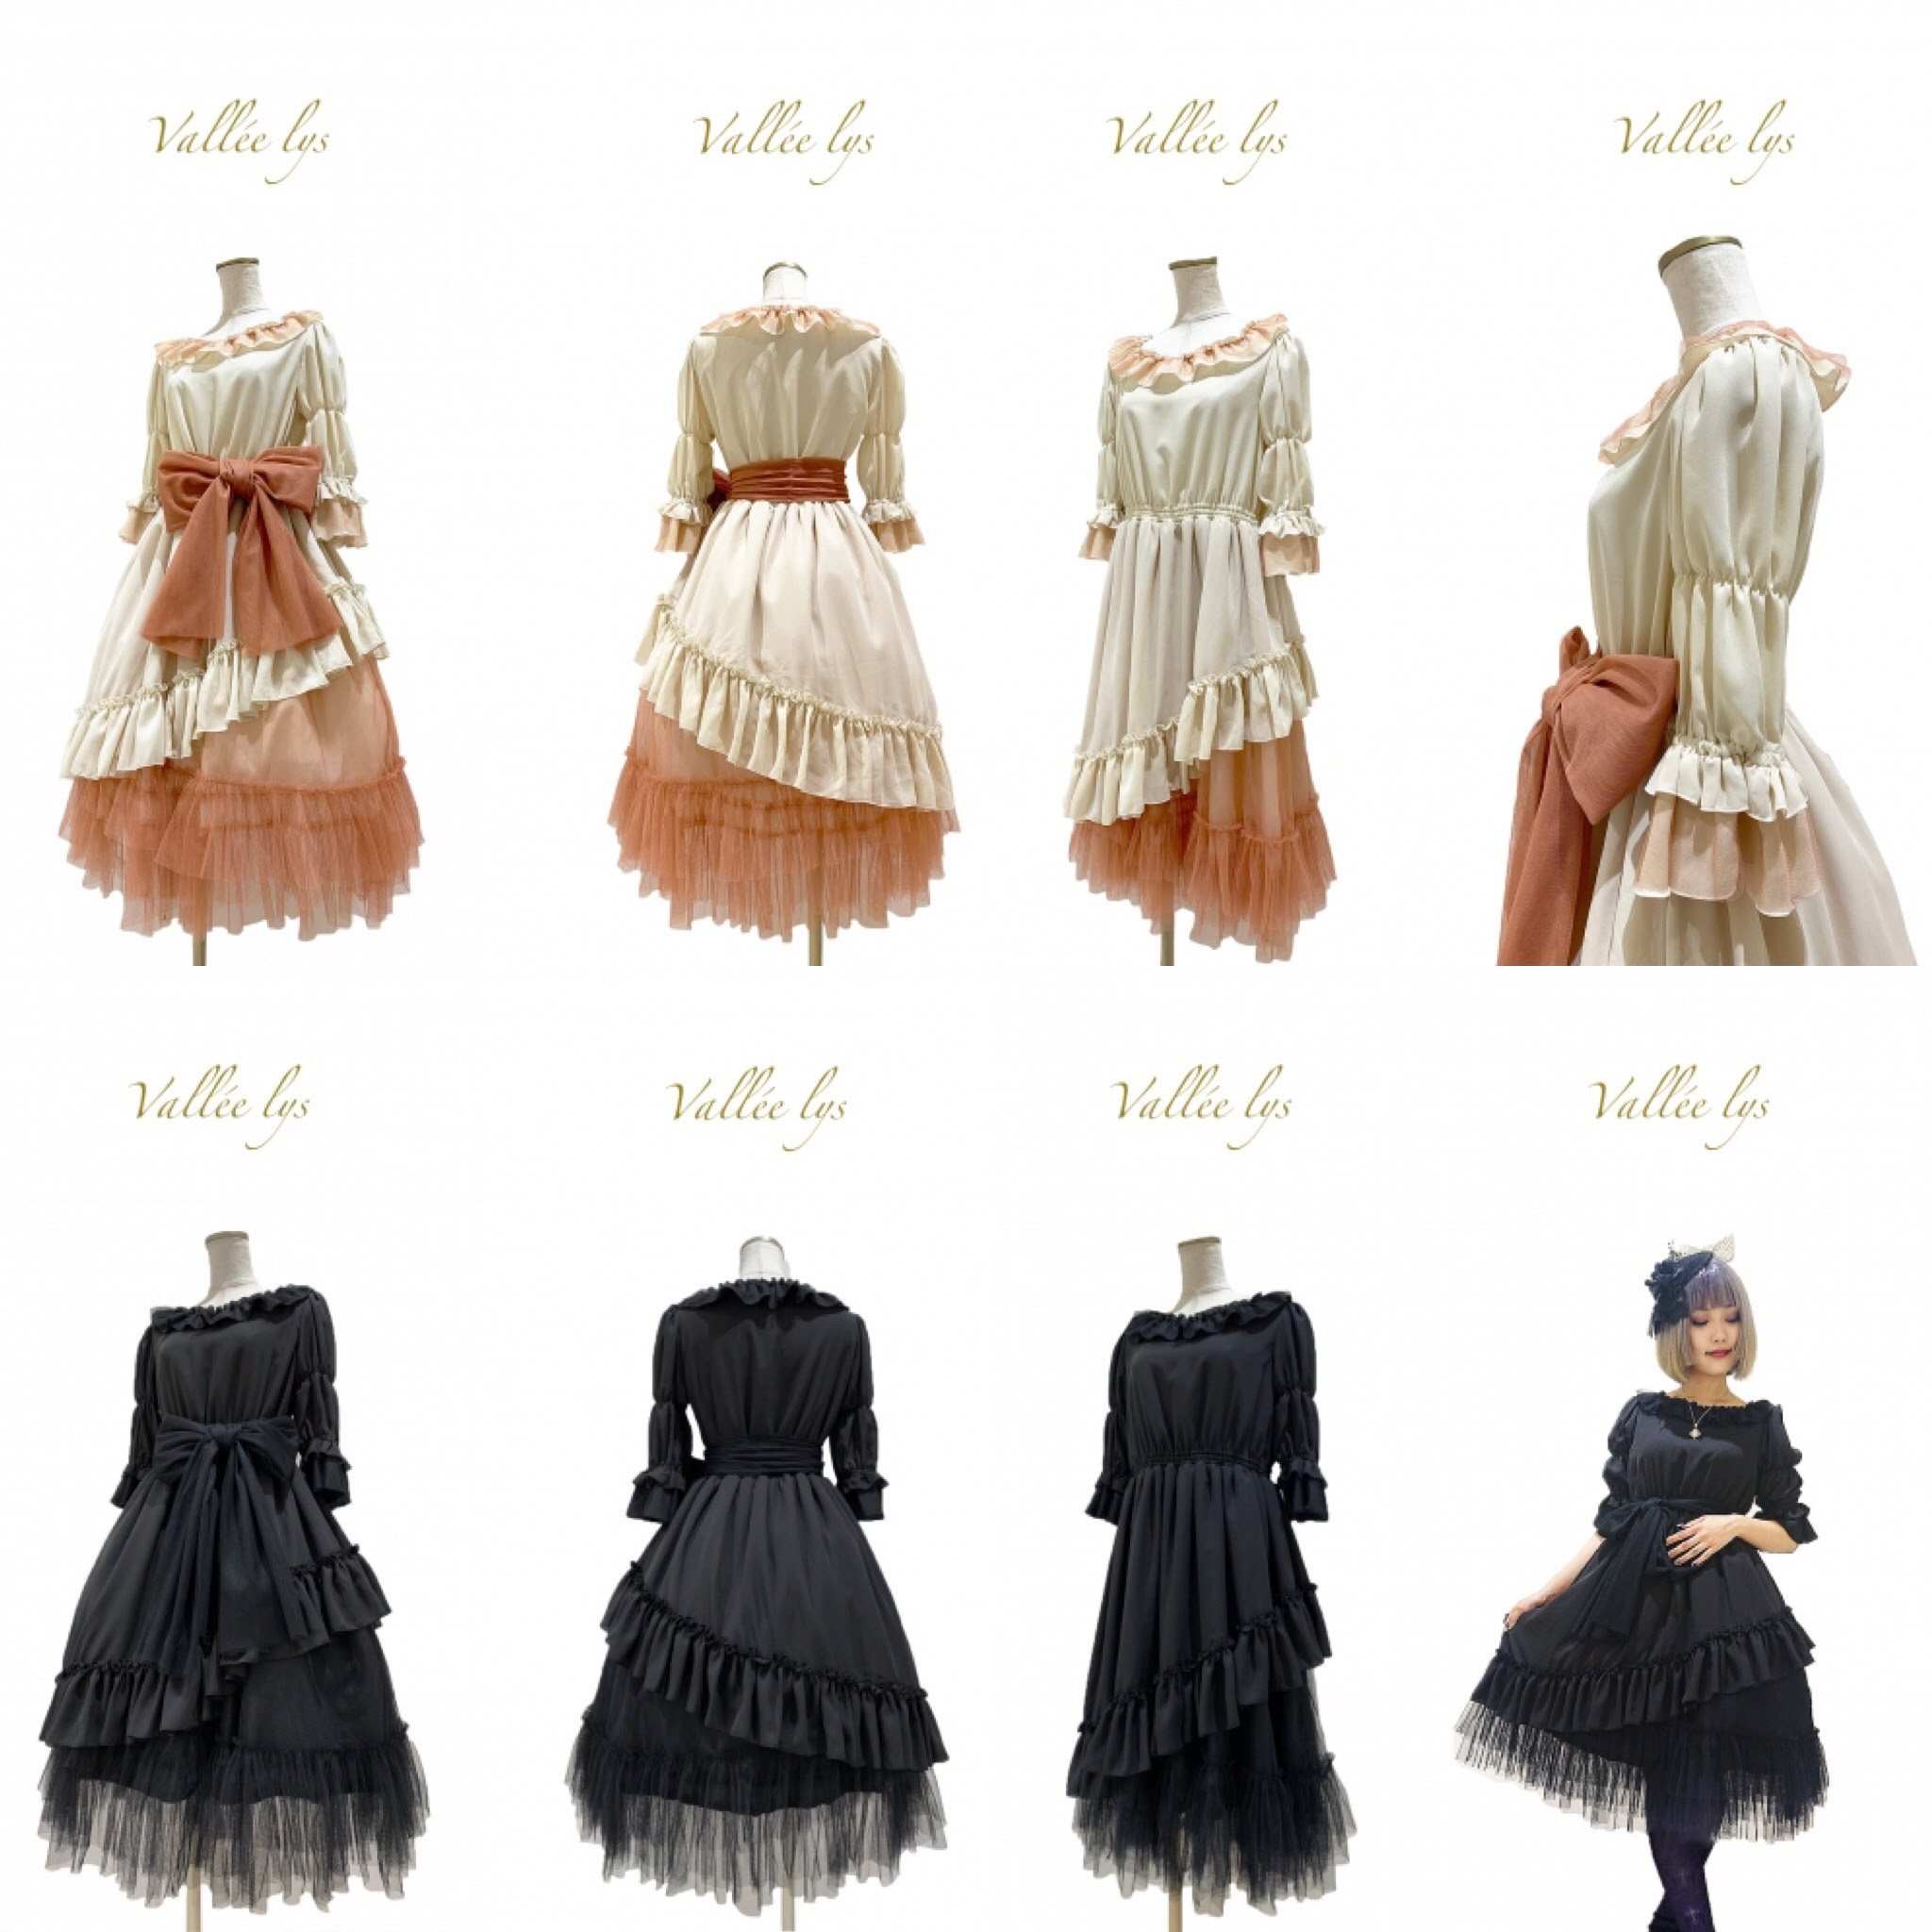 Vallée lys Tulle Frill OP